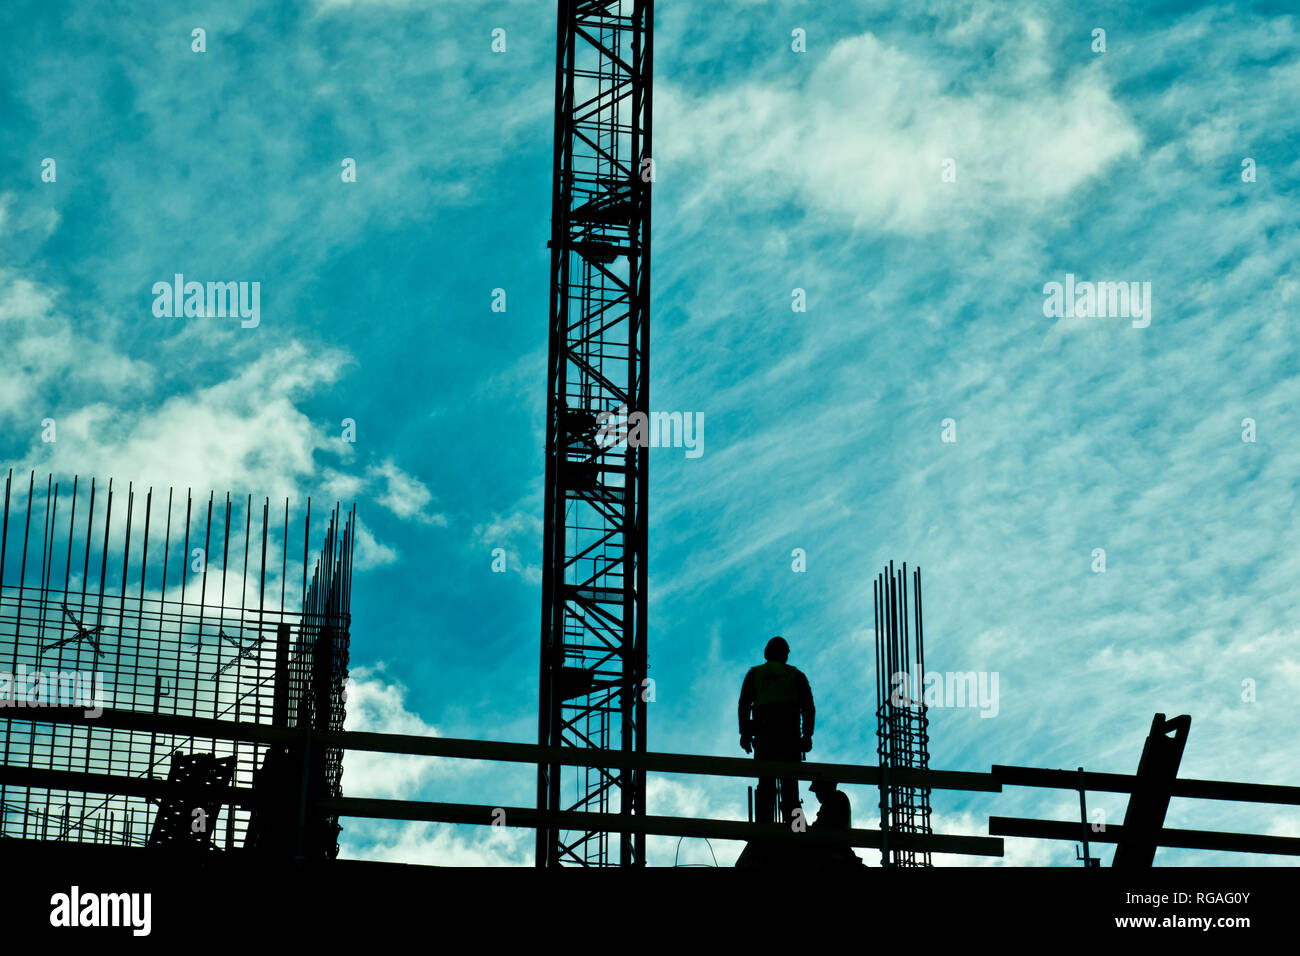 construction workers working at the construction of a multi-story building - Stock Image